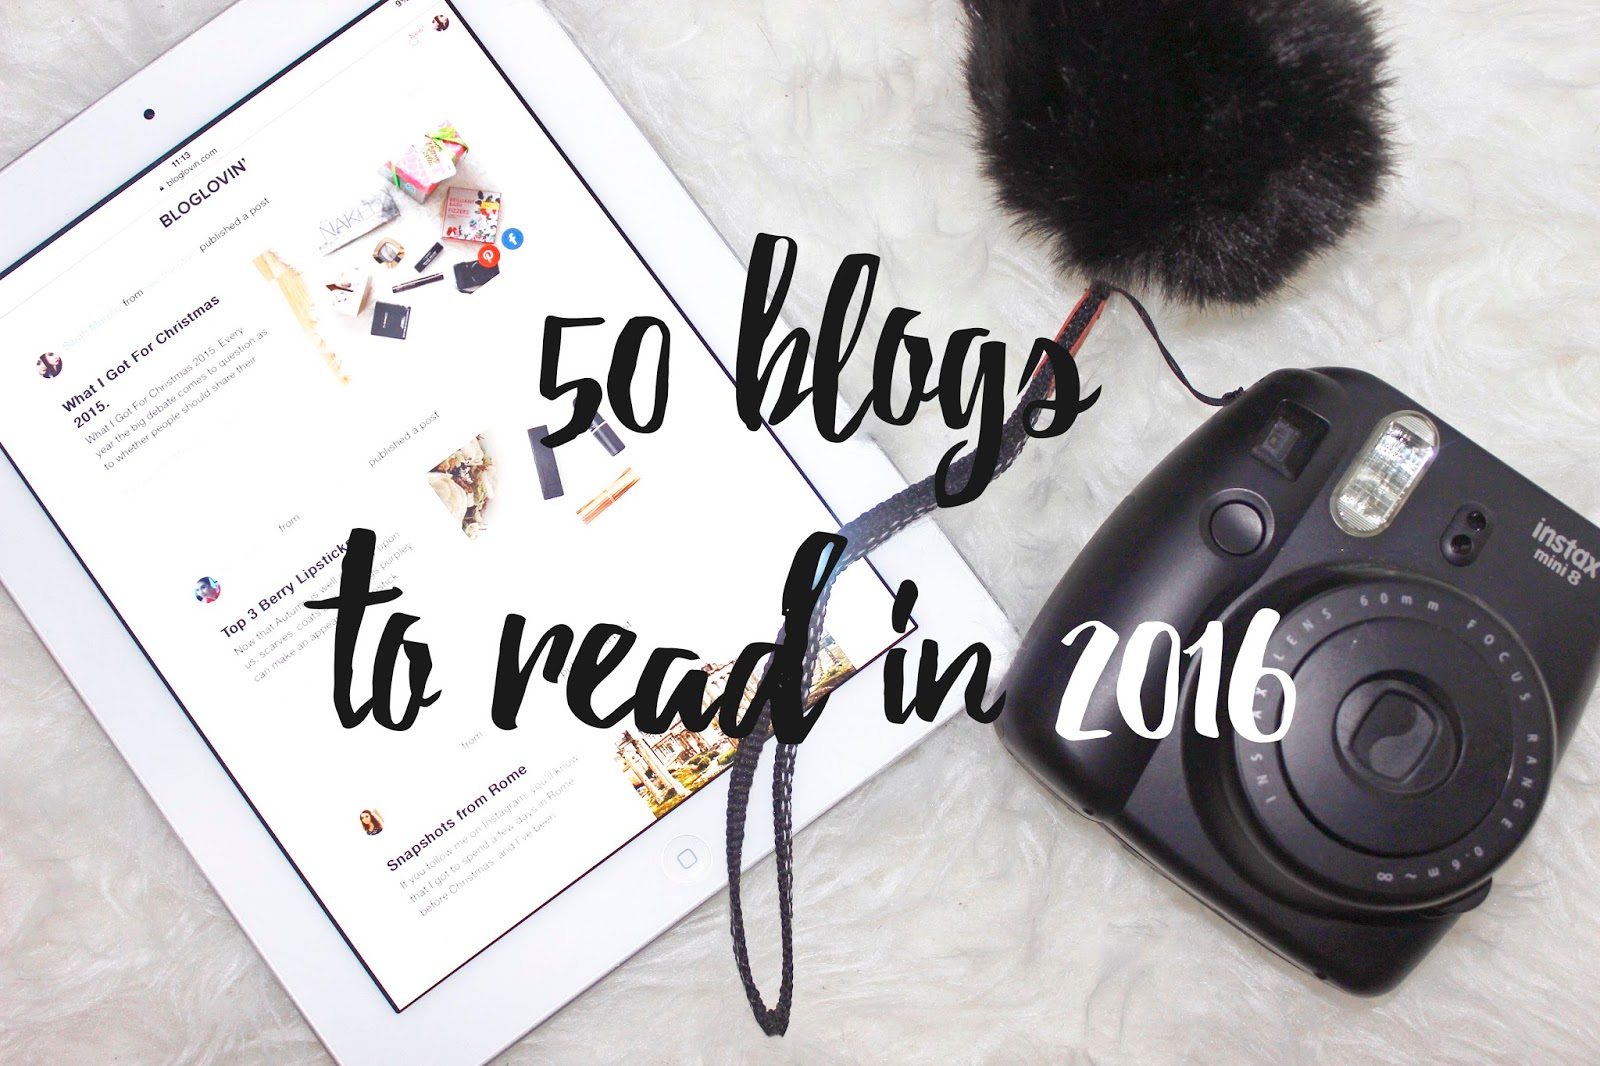 See The Stars - 50 blogs to read in 2016